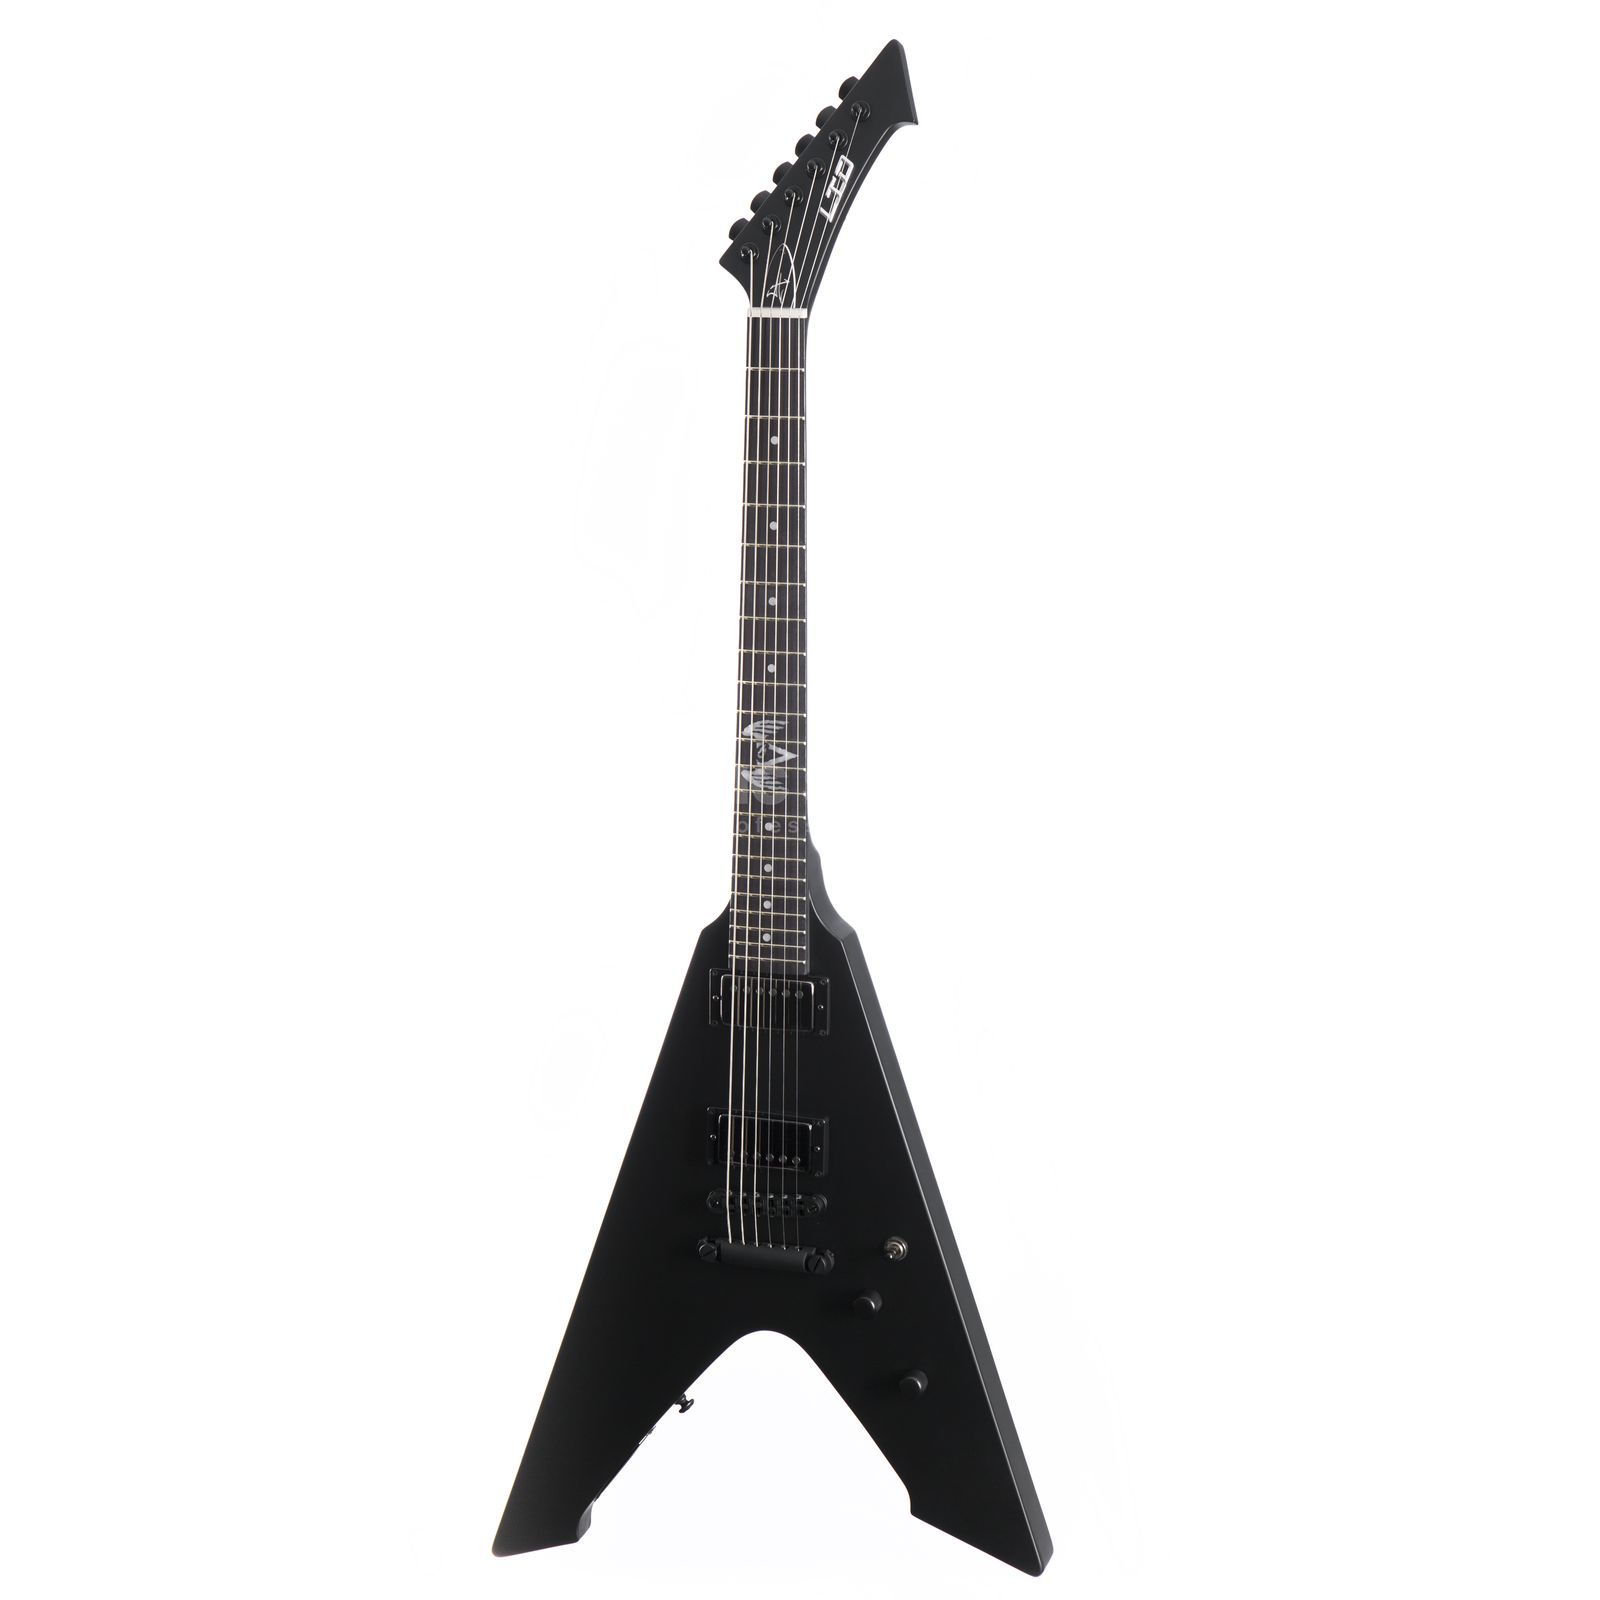 ESP LTD Vulture Black Satin James Hetfield Signature Изображение товара